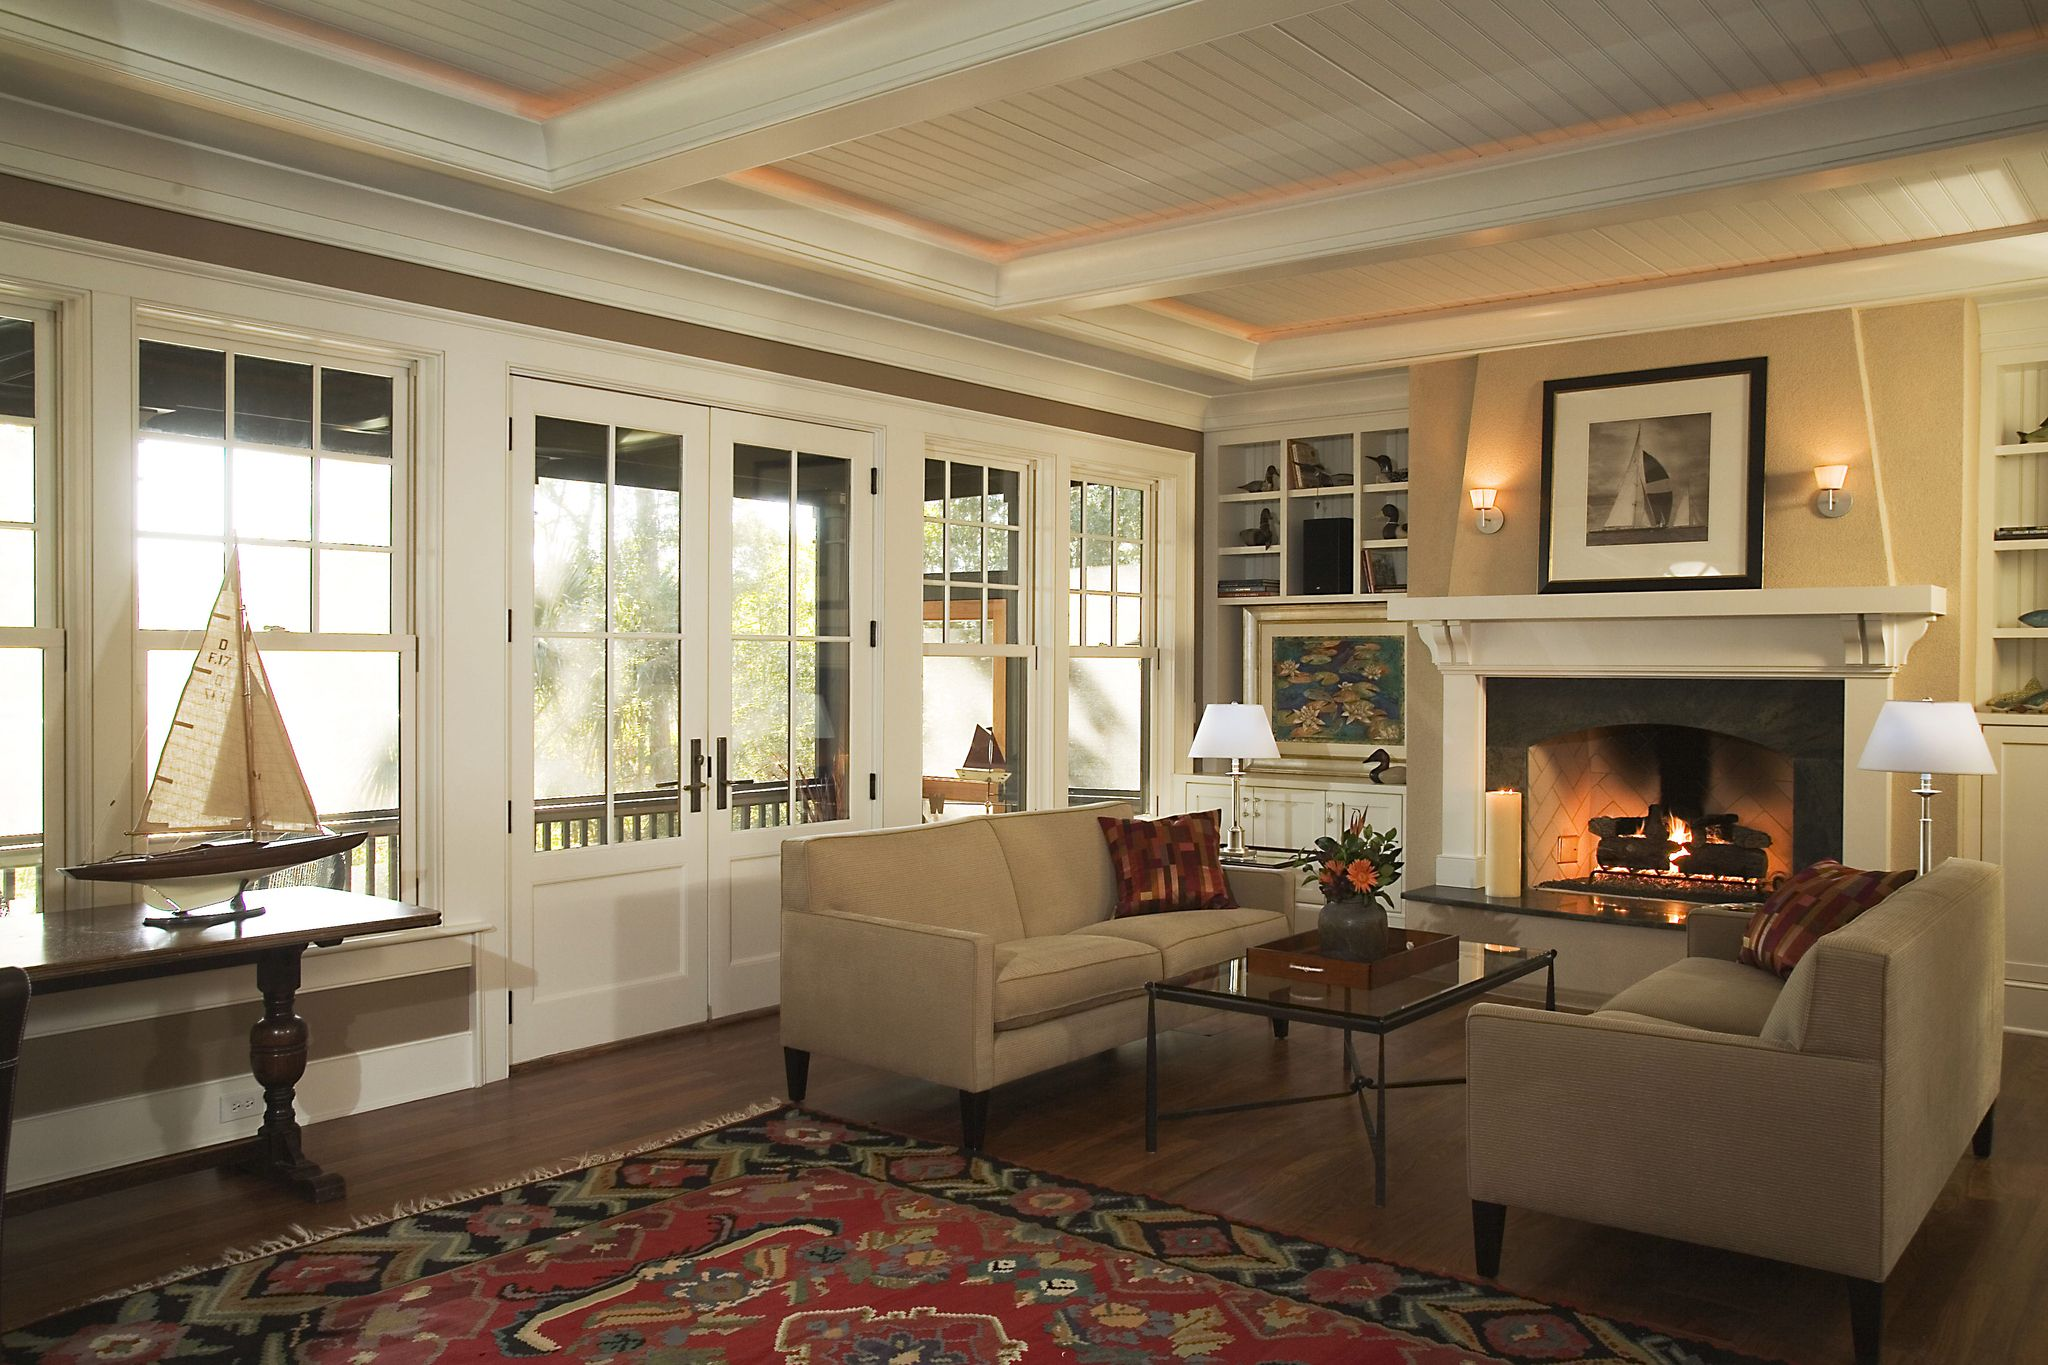 House window wall design  kiawah island shingle style u herlong u associates architecture